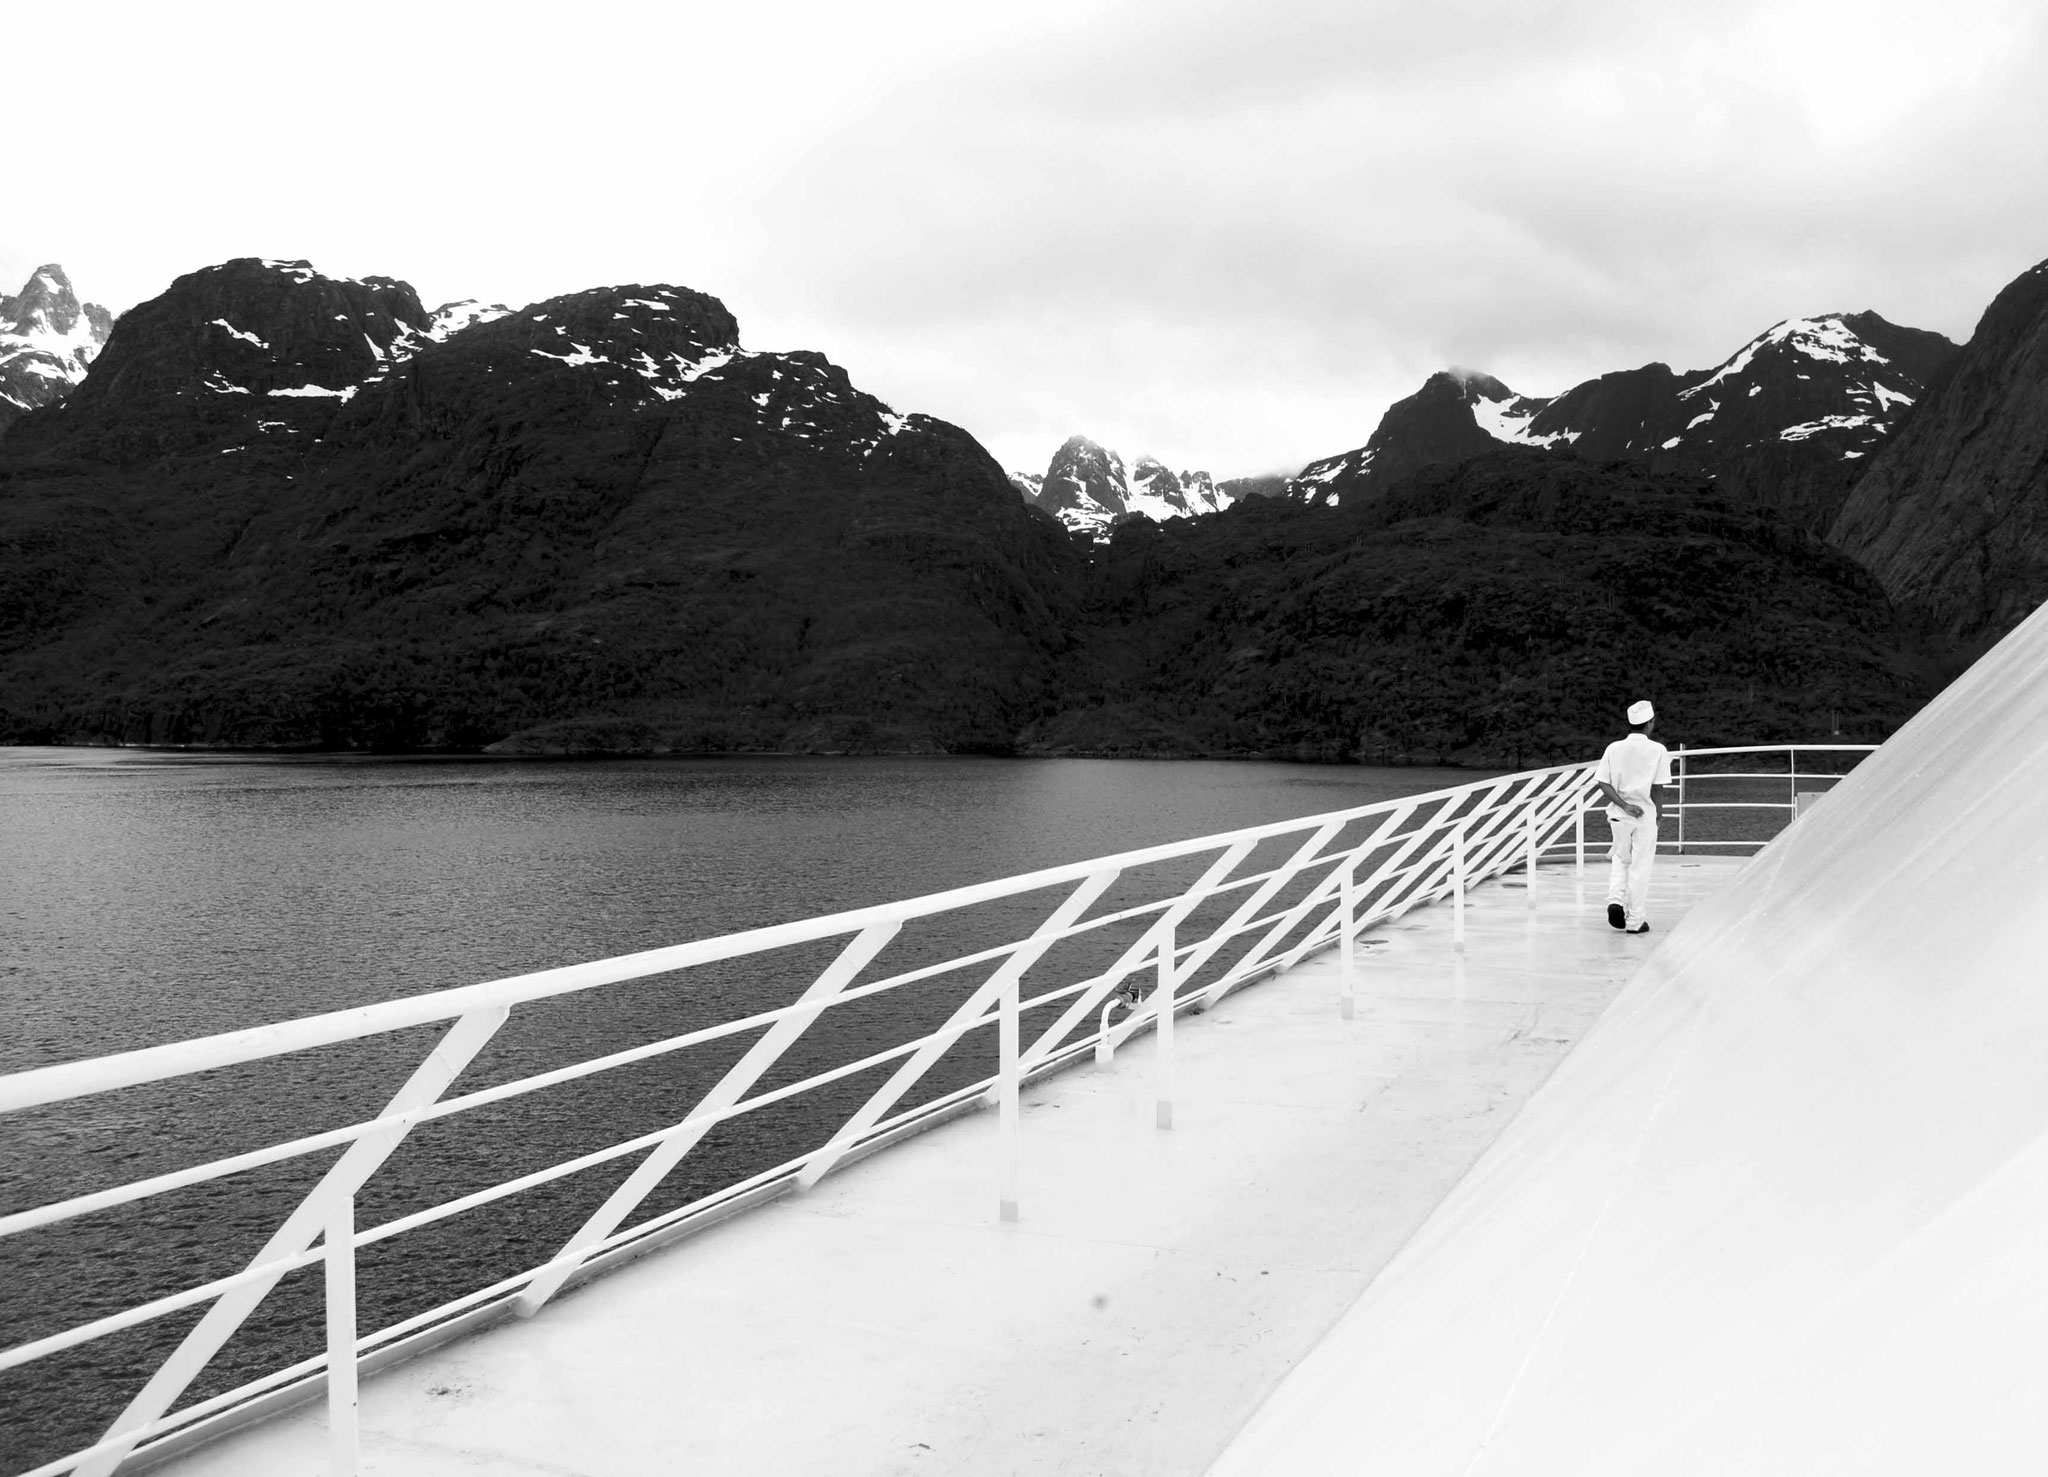 A fine example of a Meandering Man melting into the scenery in Norway. First cruise contract on the Azamara Journey. June 2014